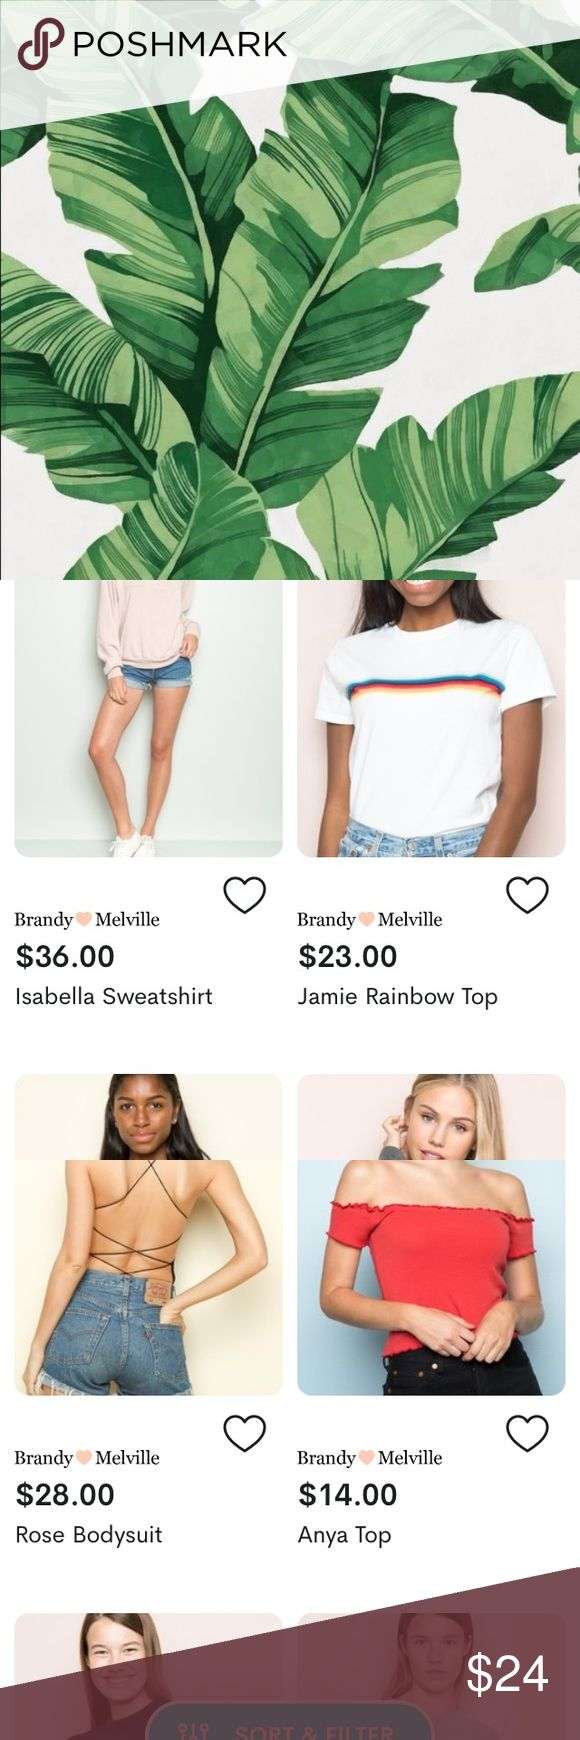 Try dote the shopping app for your ISO! Are you searching for the really cute Brandy top, jacket, pants, jeans, or sweatshirt?! Well, you should try dote because you can get your in search of for cheap! If you use my code MV6M you get your first purchase with a discount, $5 off AND free shipping! Dote is 100% trustworthy:) Brandy Melville Tops